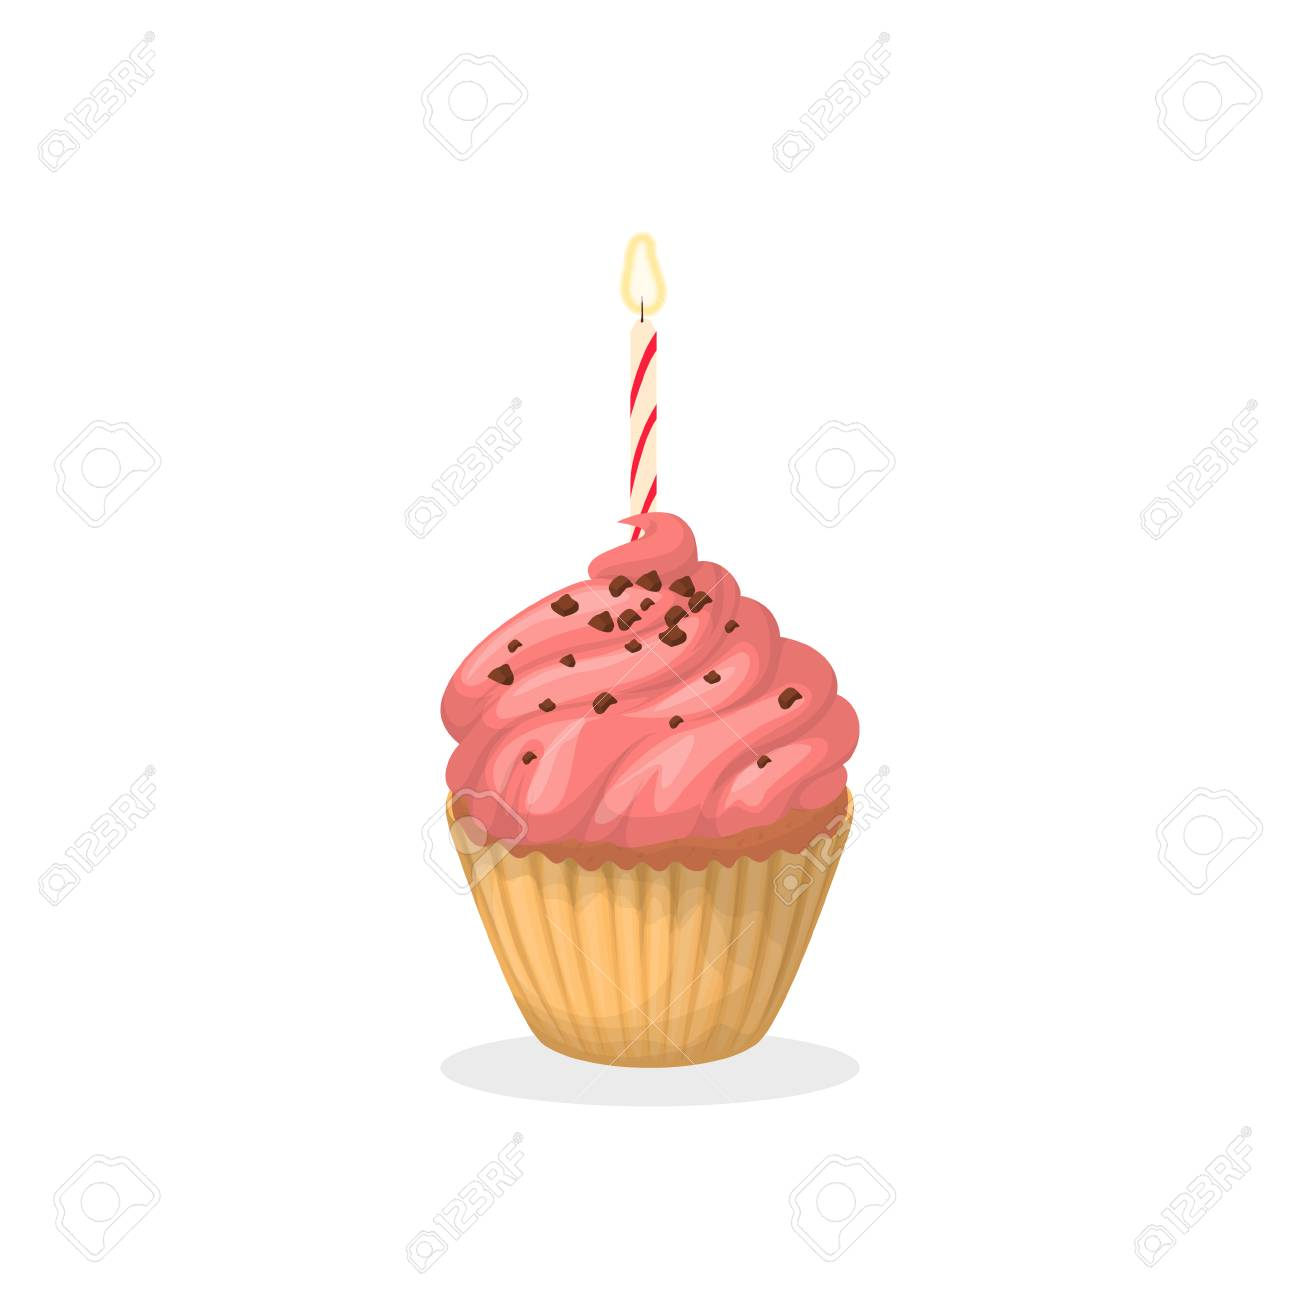 Isolated Pink Birthday Cupcake With Chocolate Sprinkles And Candle